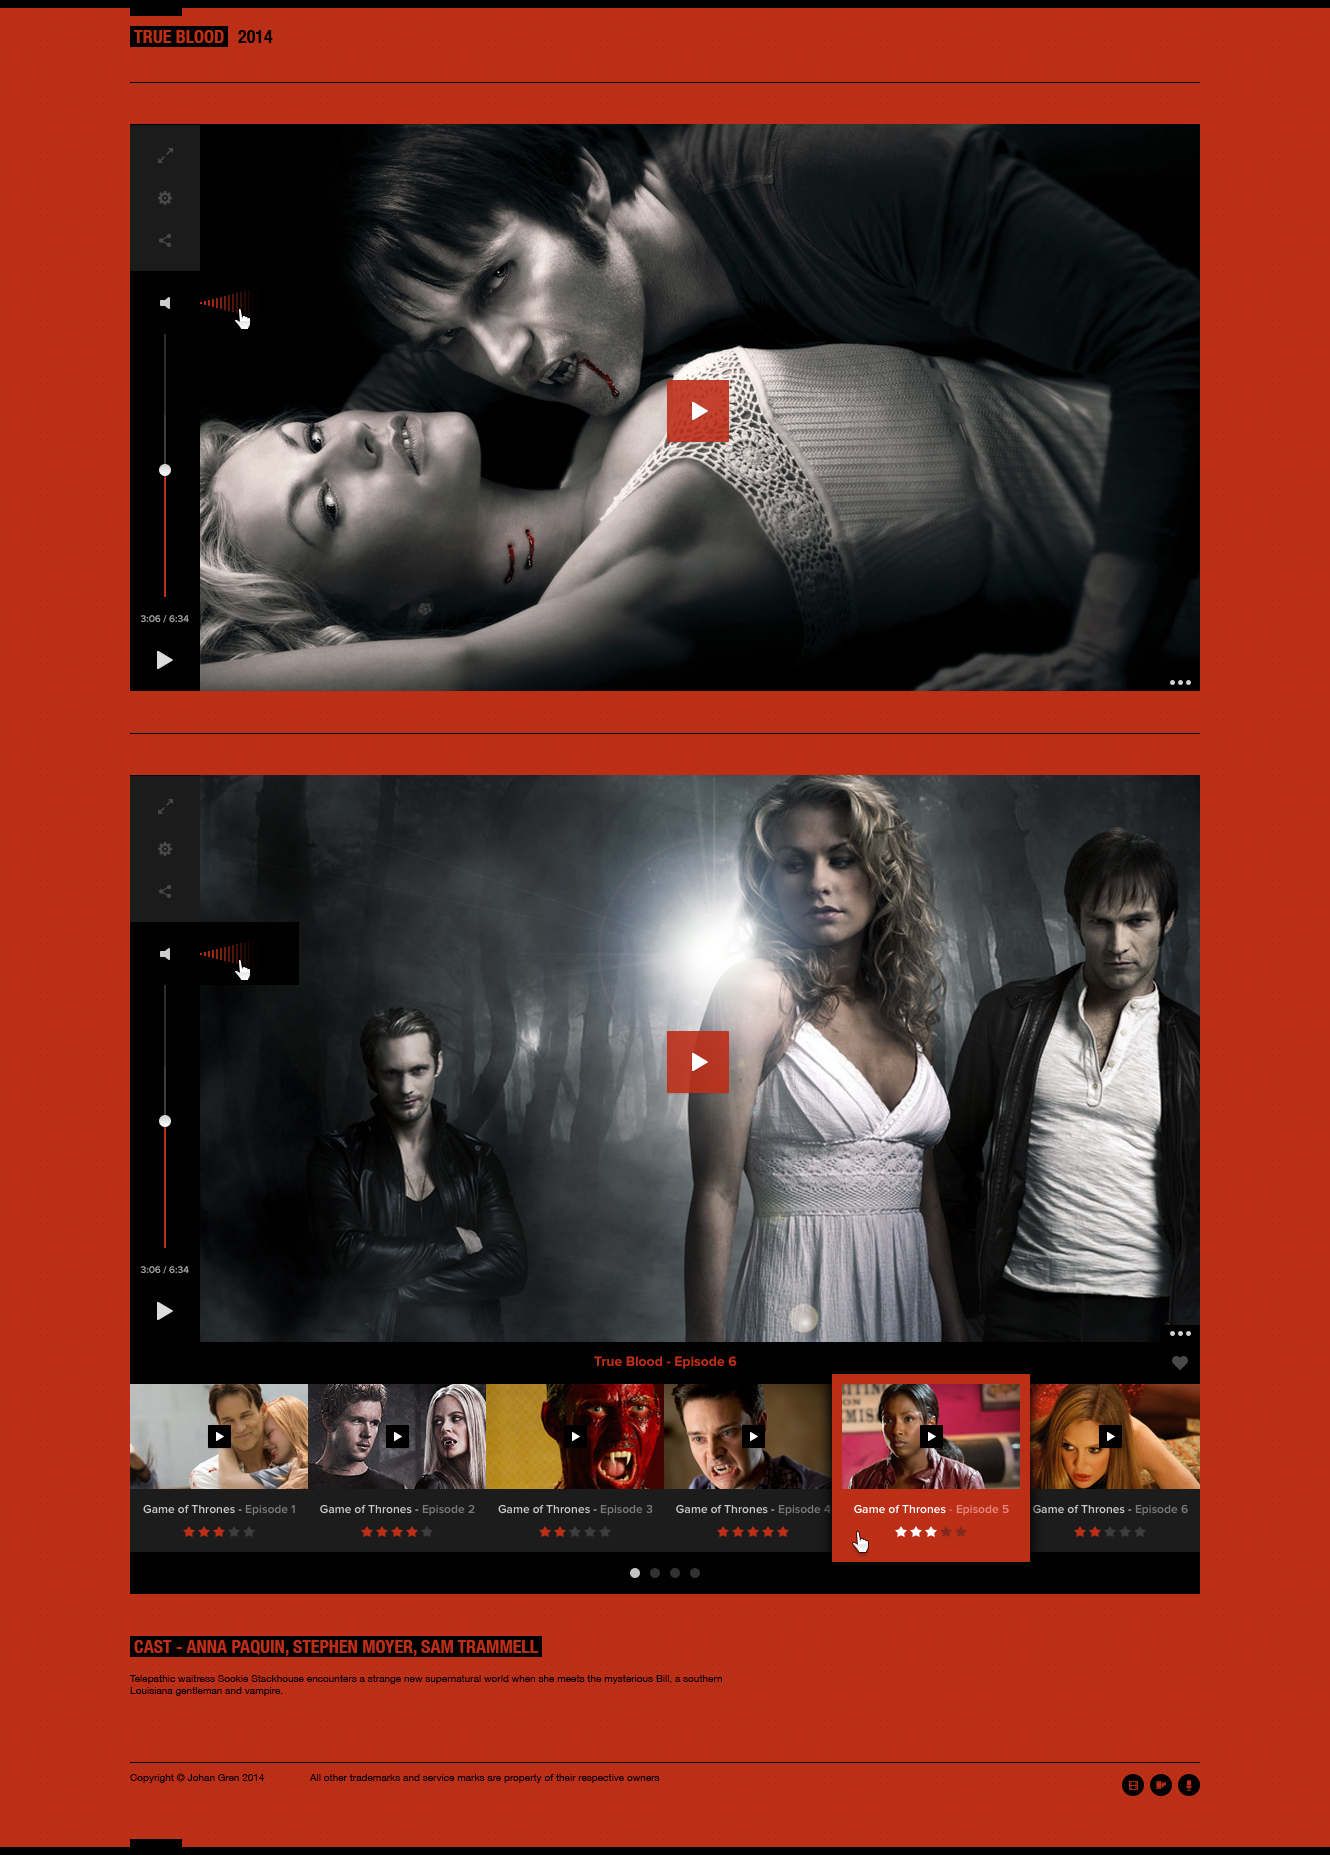 Flat Video Player Gallery Free PSD file